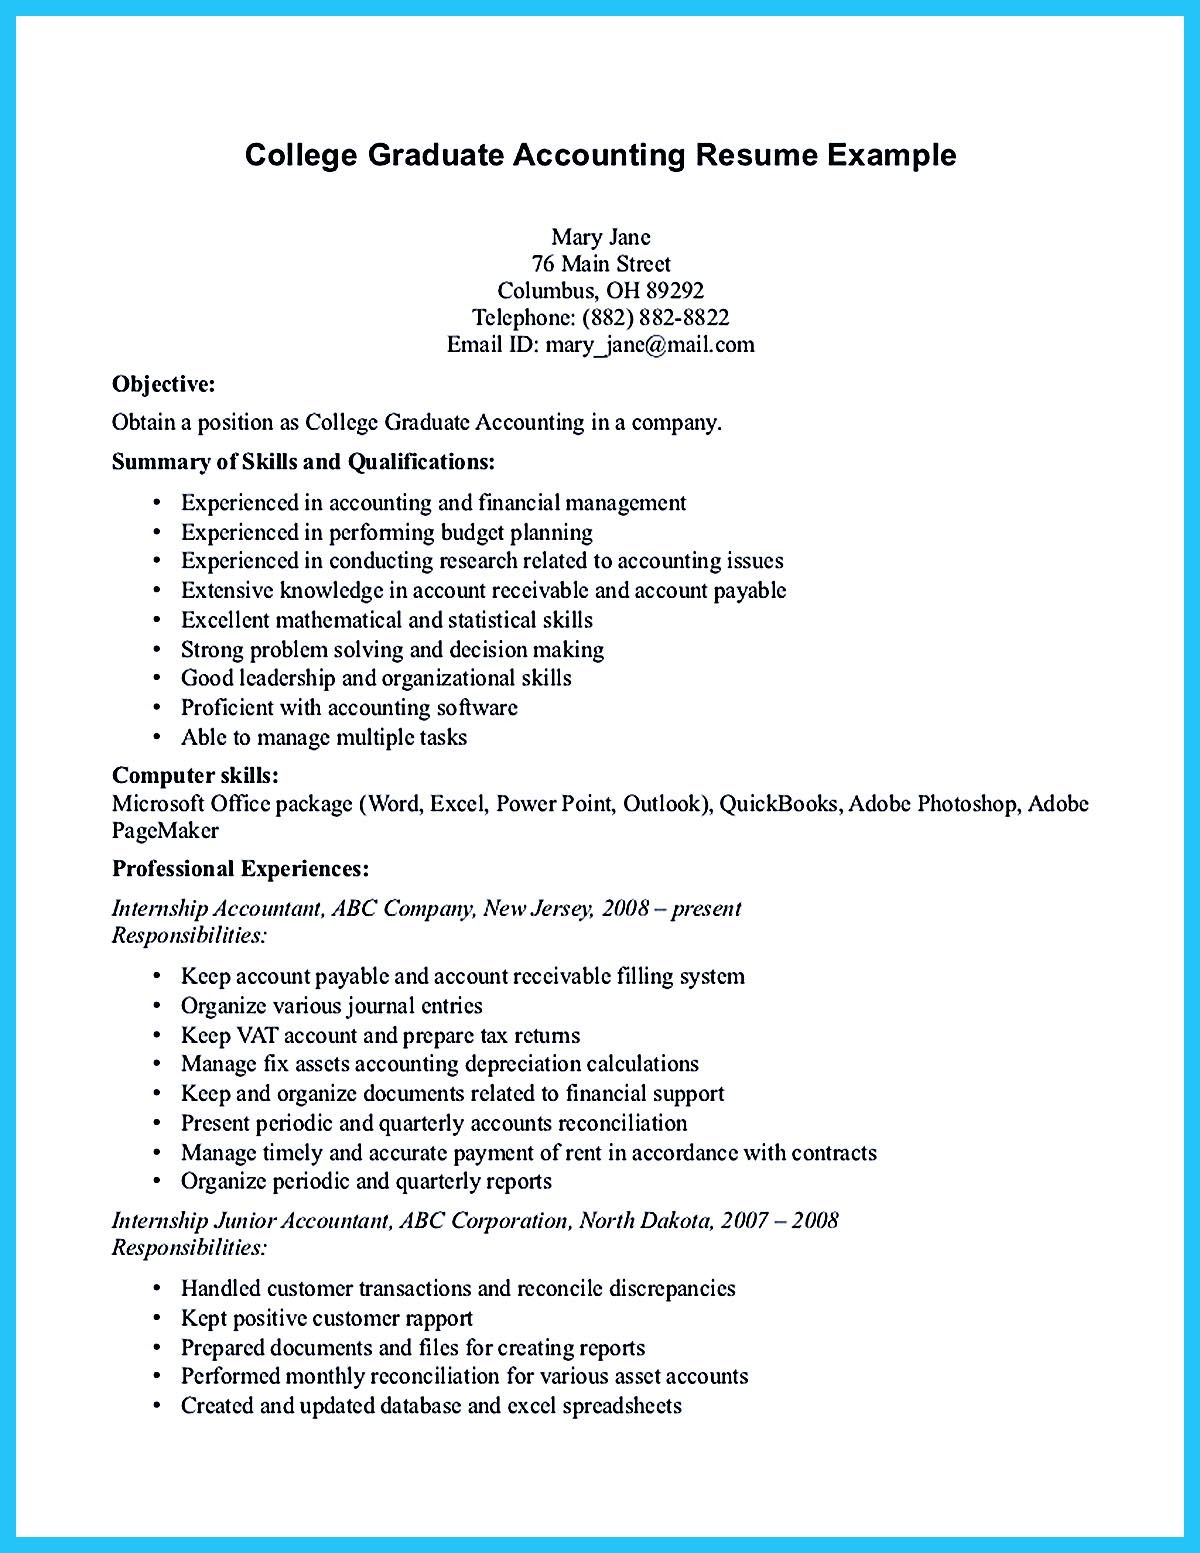 Accounting Resume Objective Accounting Student Resume Here Presents How The Resume Of